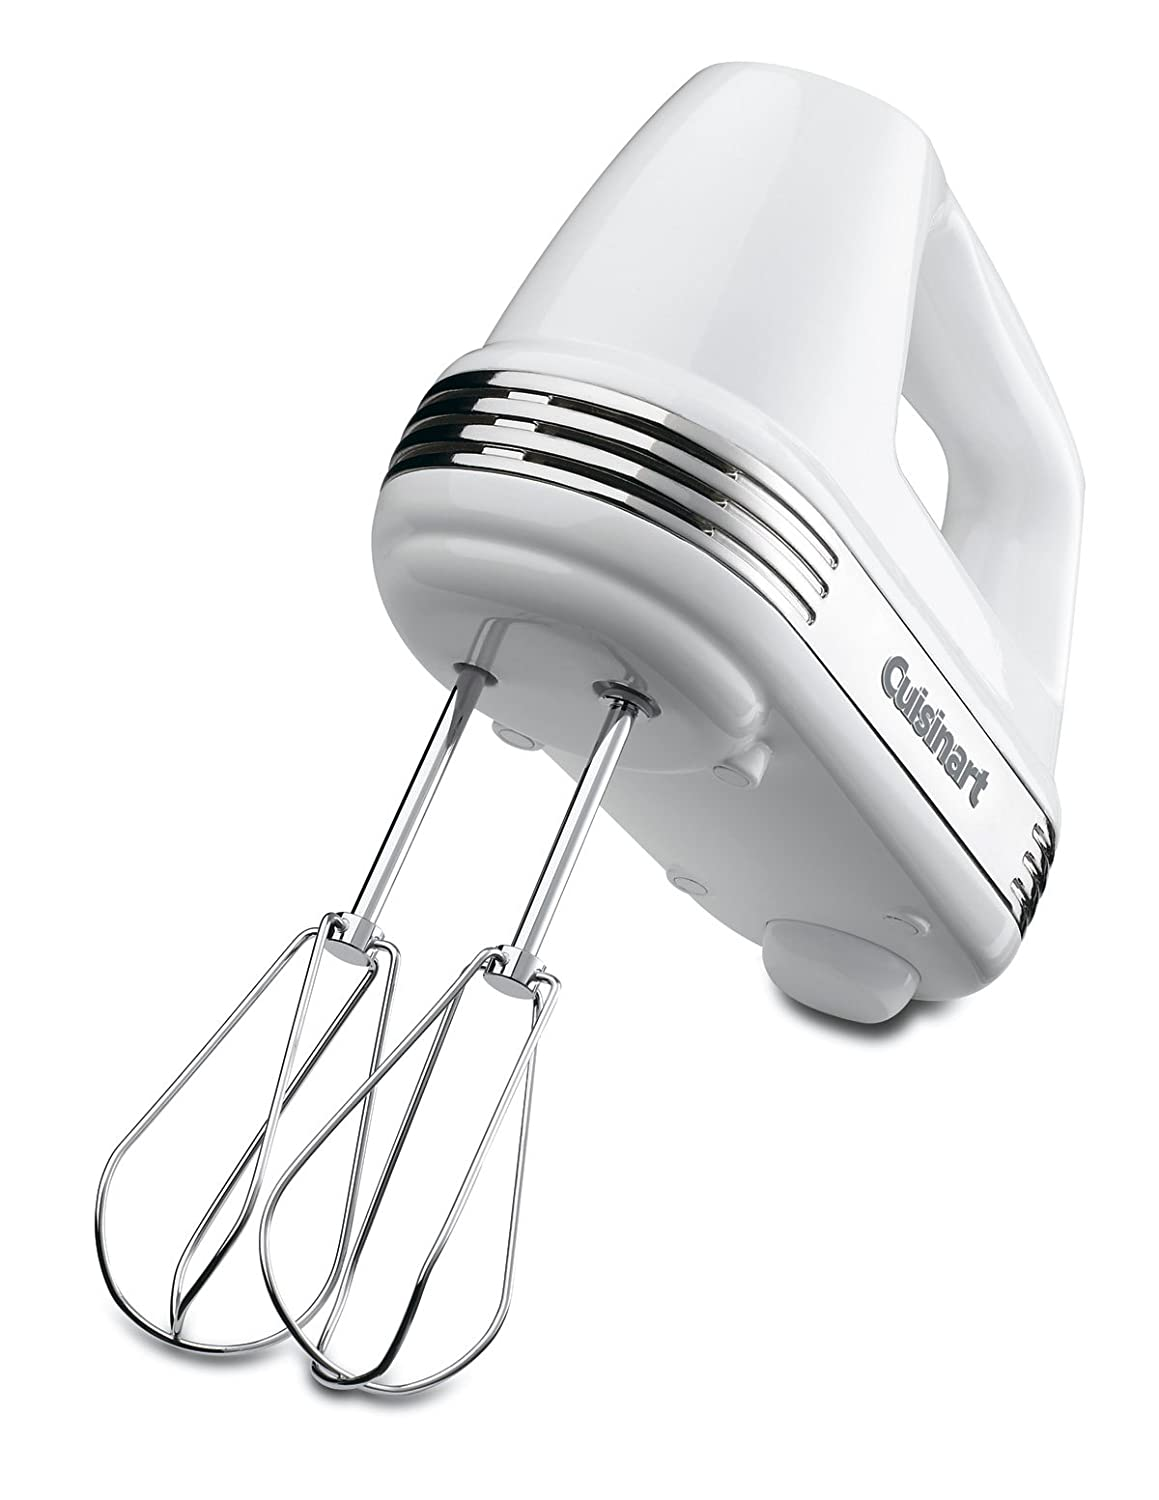 Top 10 Best Electric Hand Mixer Reviews 2018 2020 On